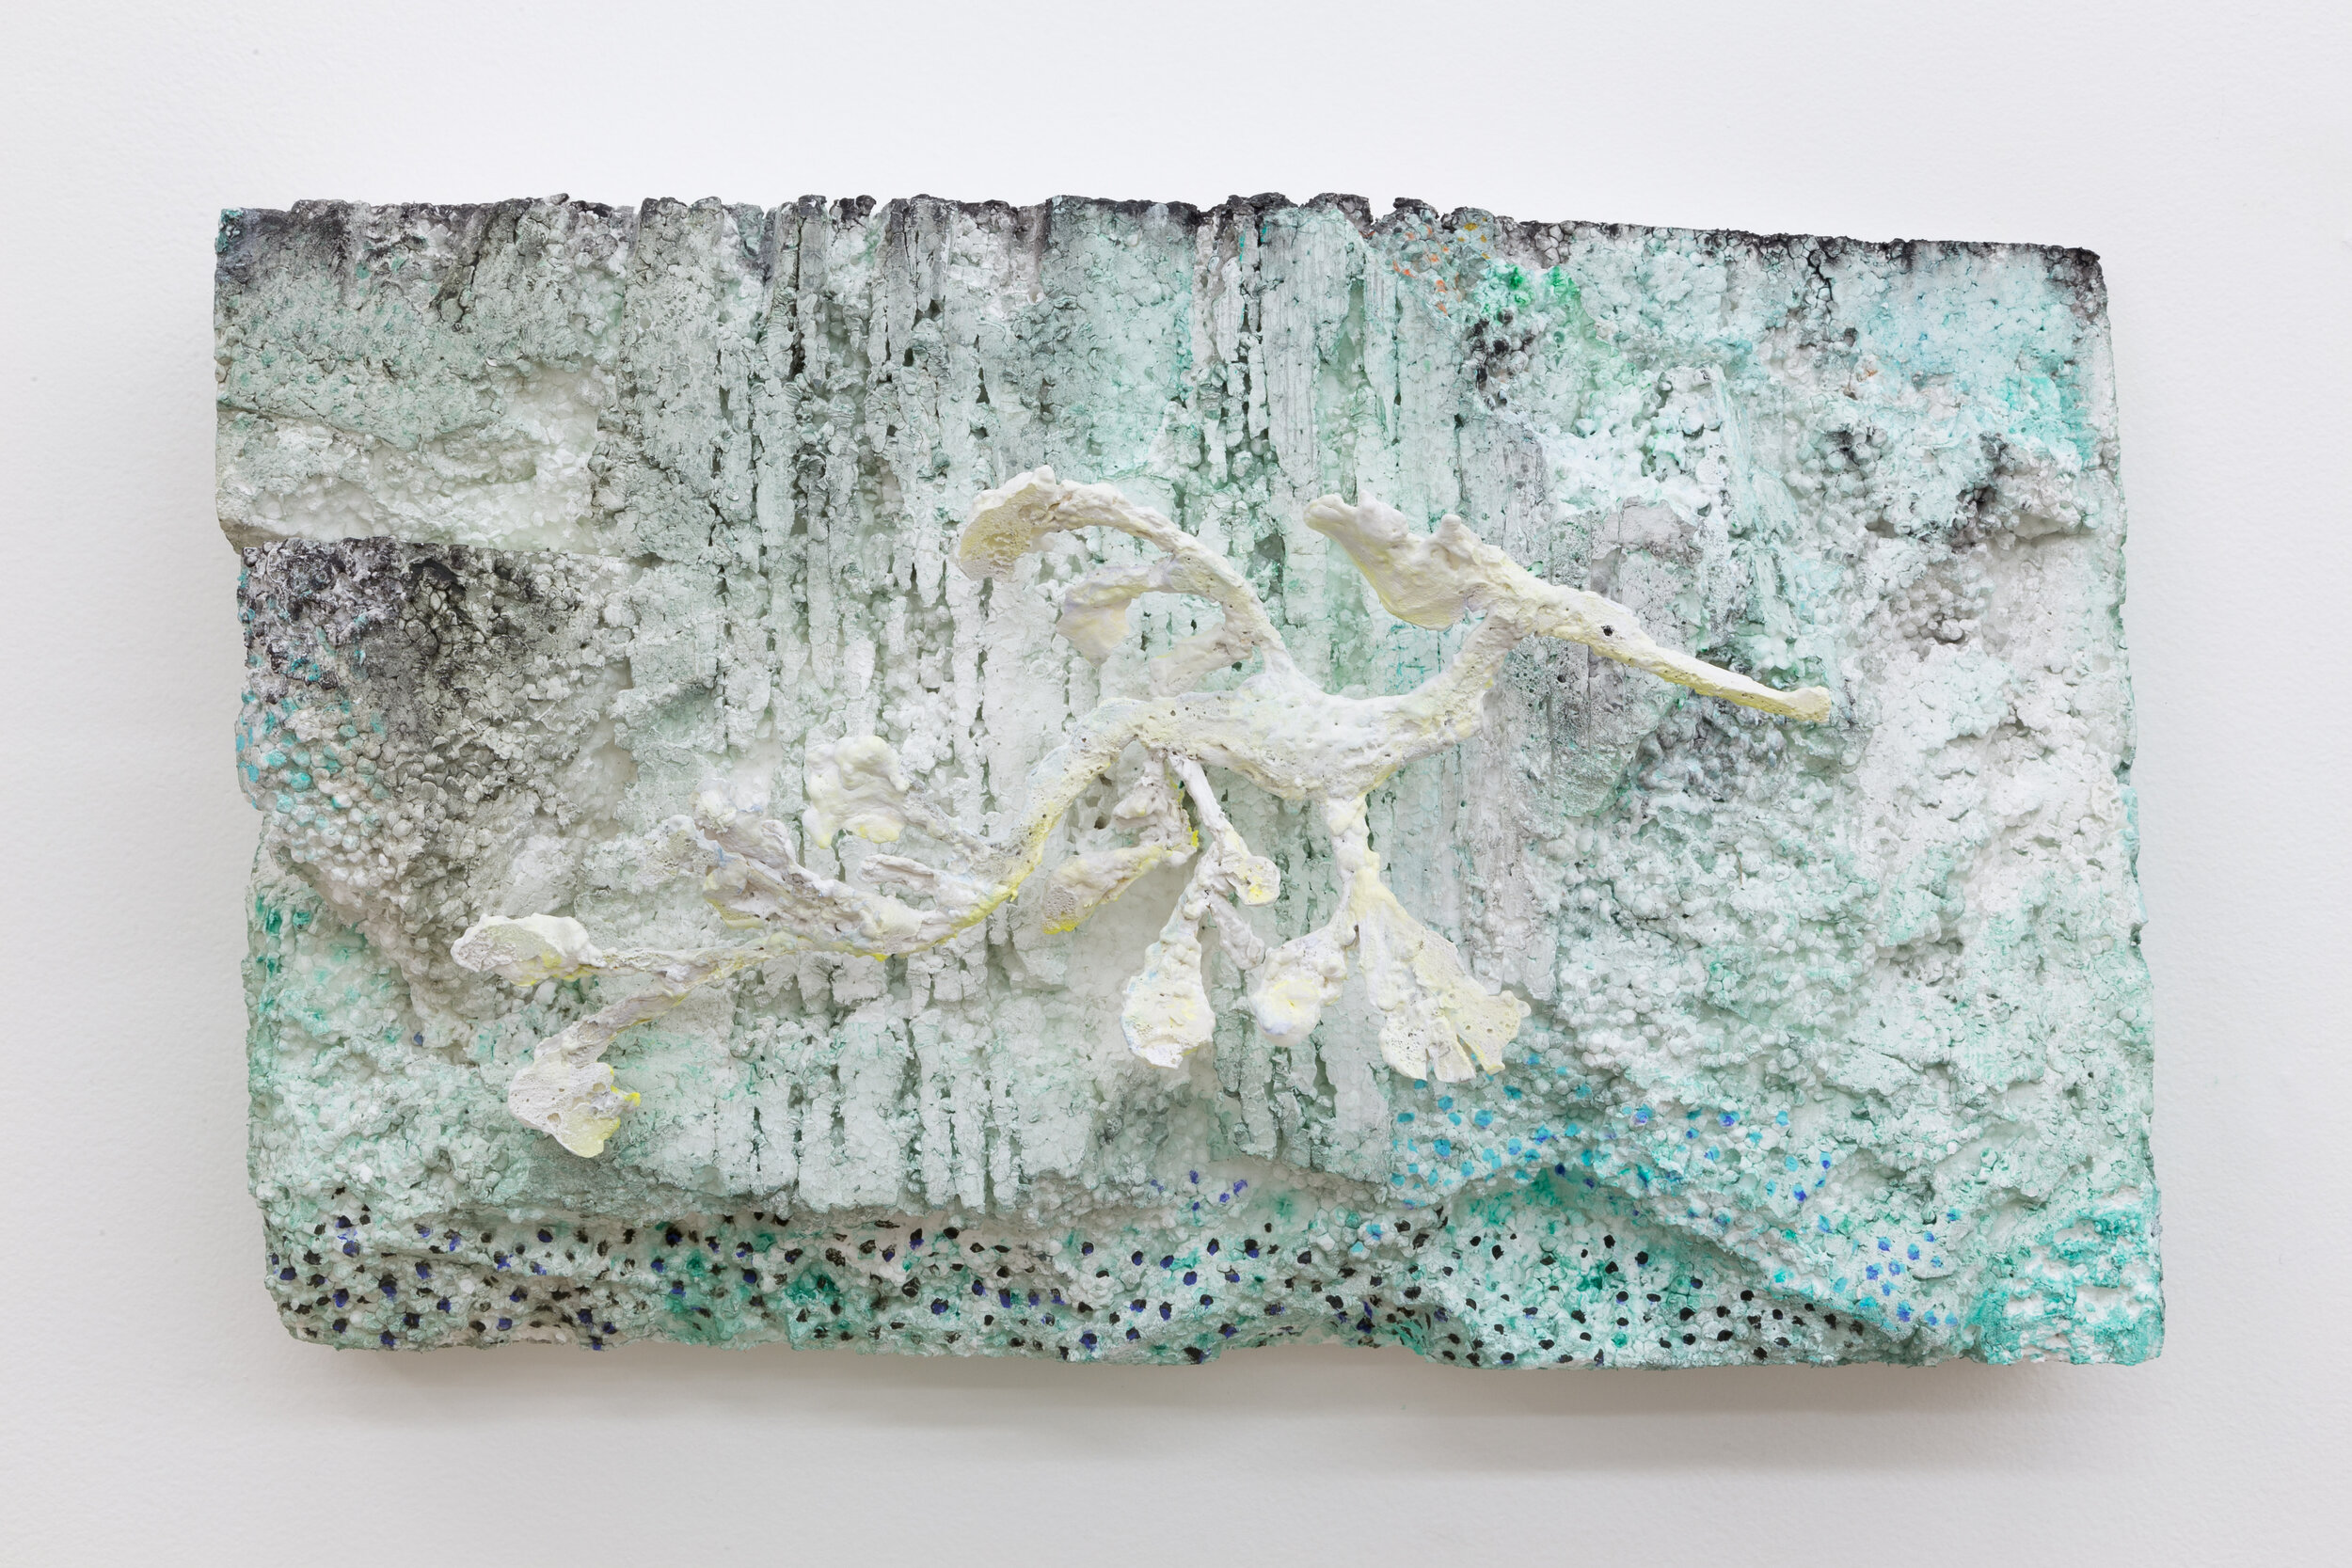 Lin May Saeed  Sea Dragon Relief V / Teneen Albaher Relief V,  2019. Styrofoam, steel, acrylic paint, 11.625 x 19.75 x 6.75 in.